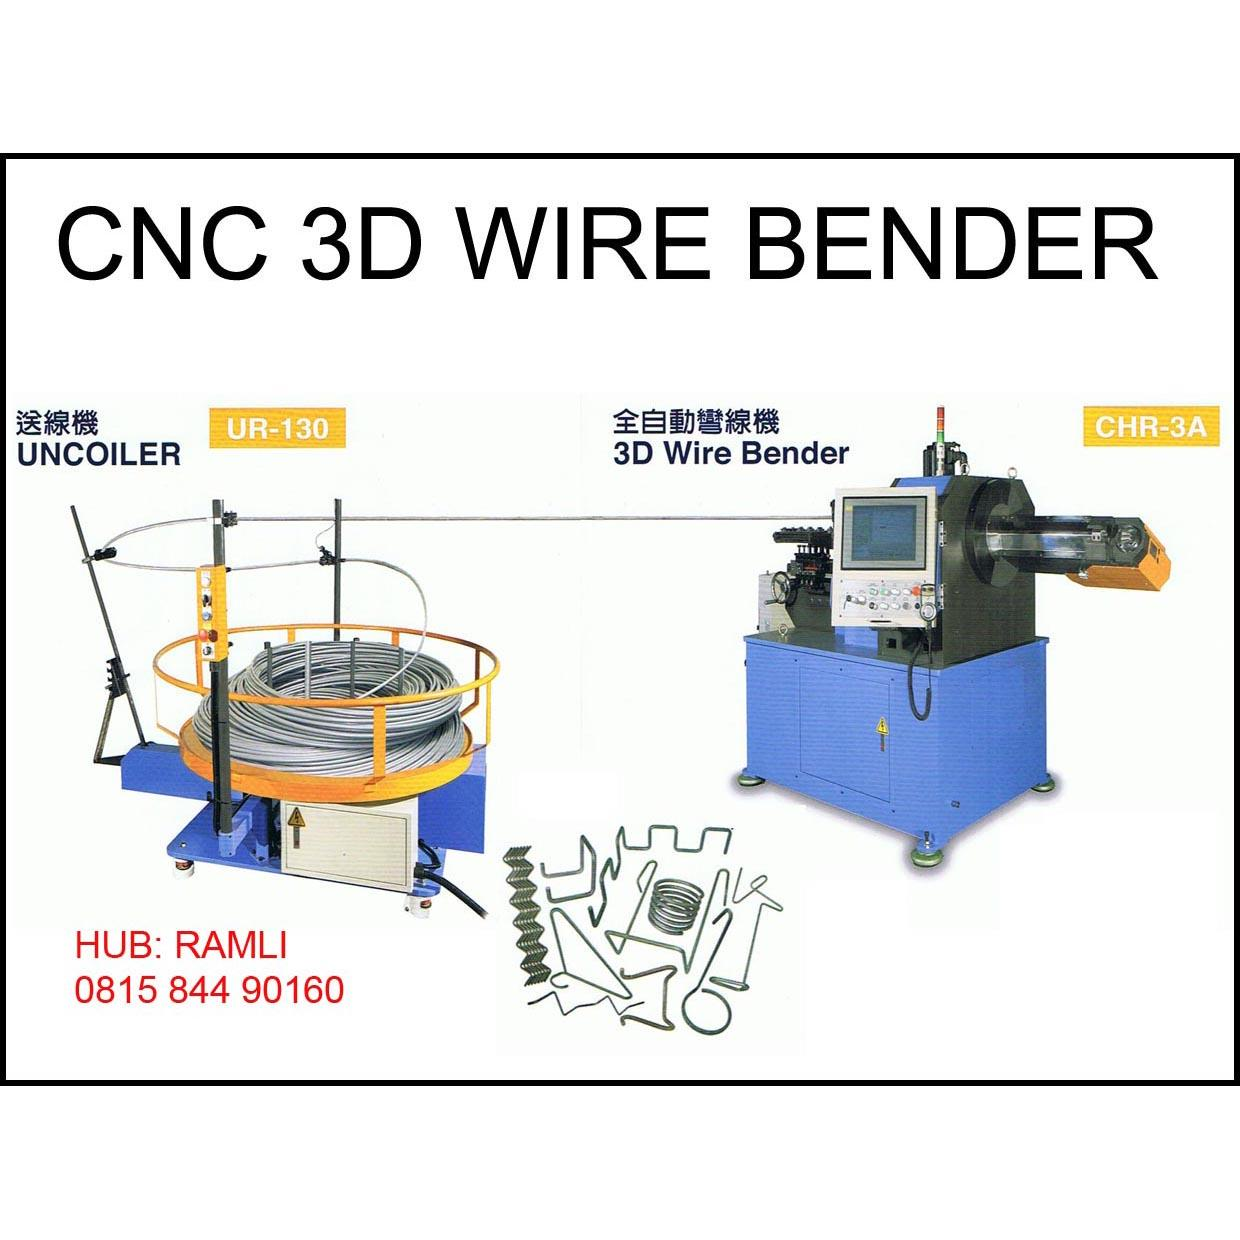 Sell Wire Bender Cnc Machine From Indonesia By Pt Widya Mesindo Mashins Wiring Diagram Wires Rayacheap Price